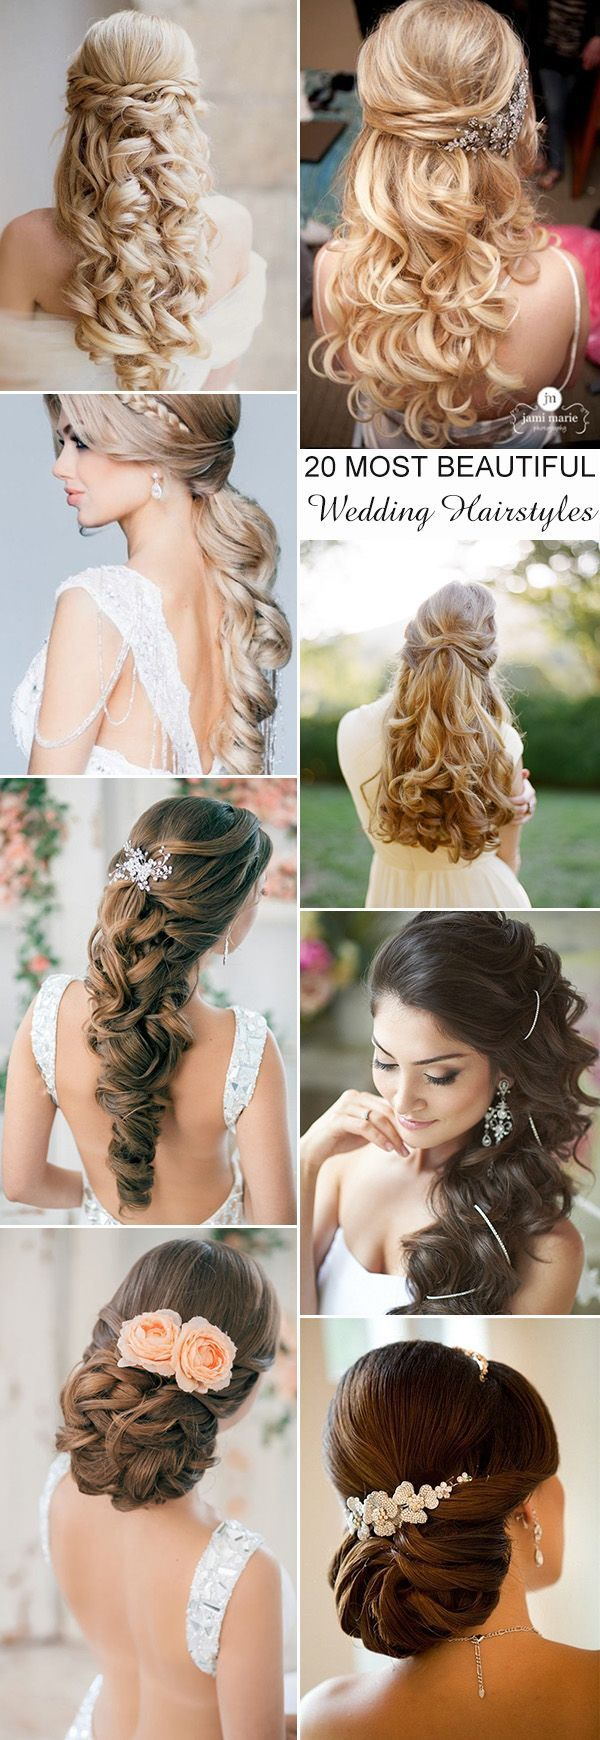 20 most beautiful and elegant wedding hairstyles for long hairs